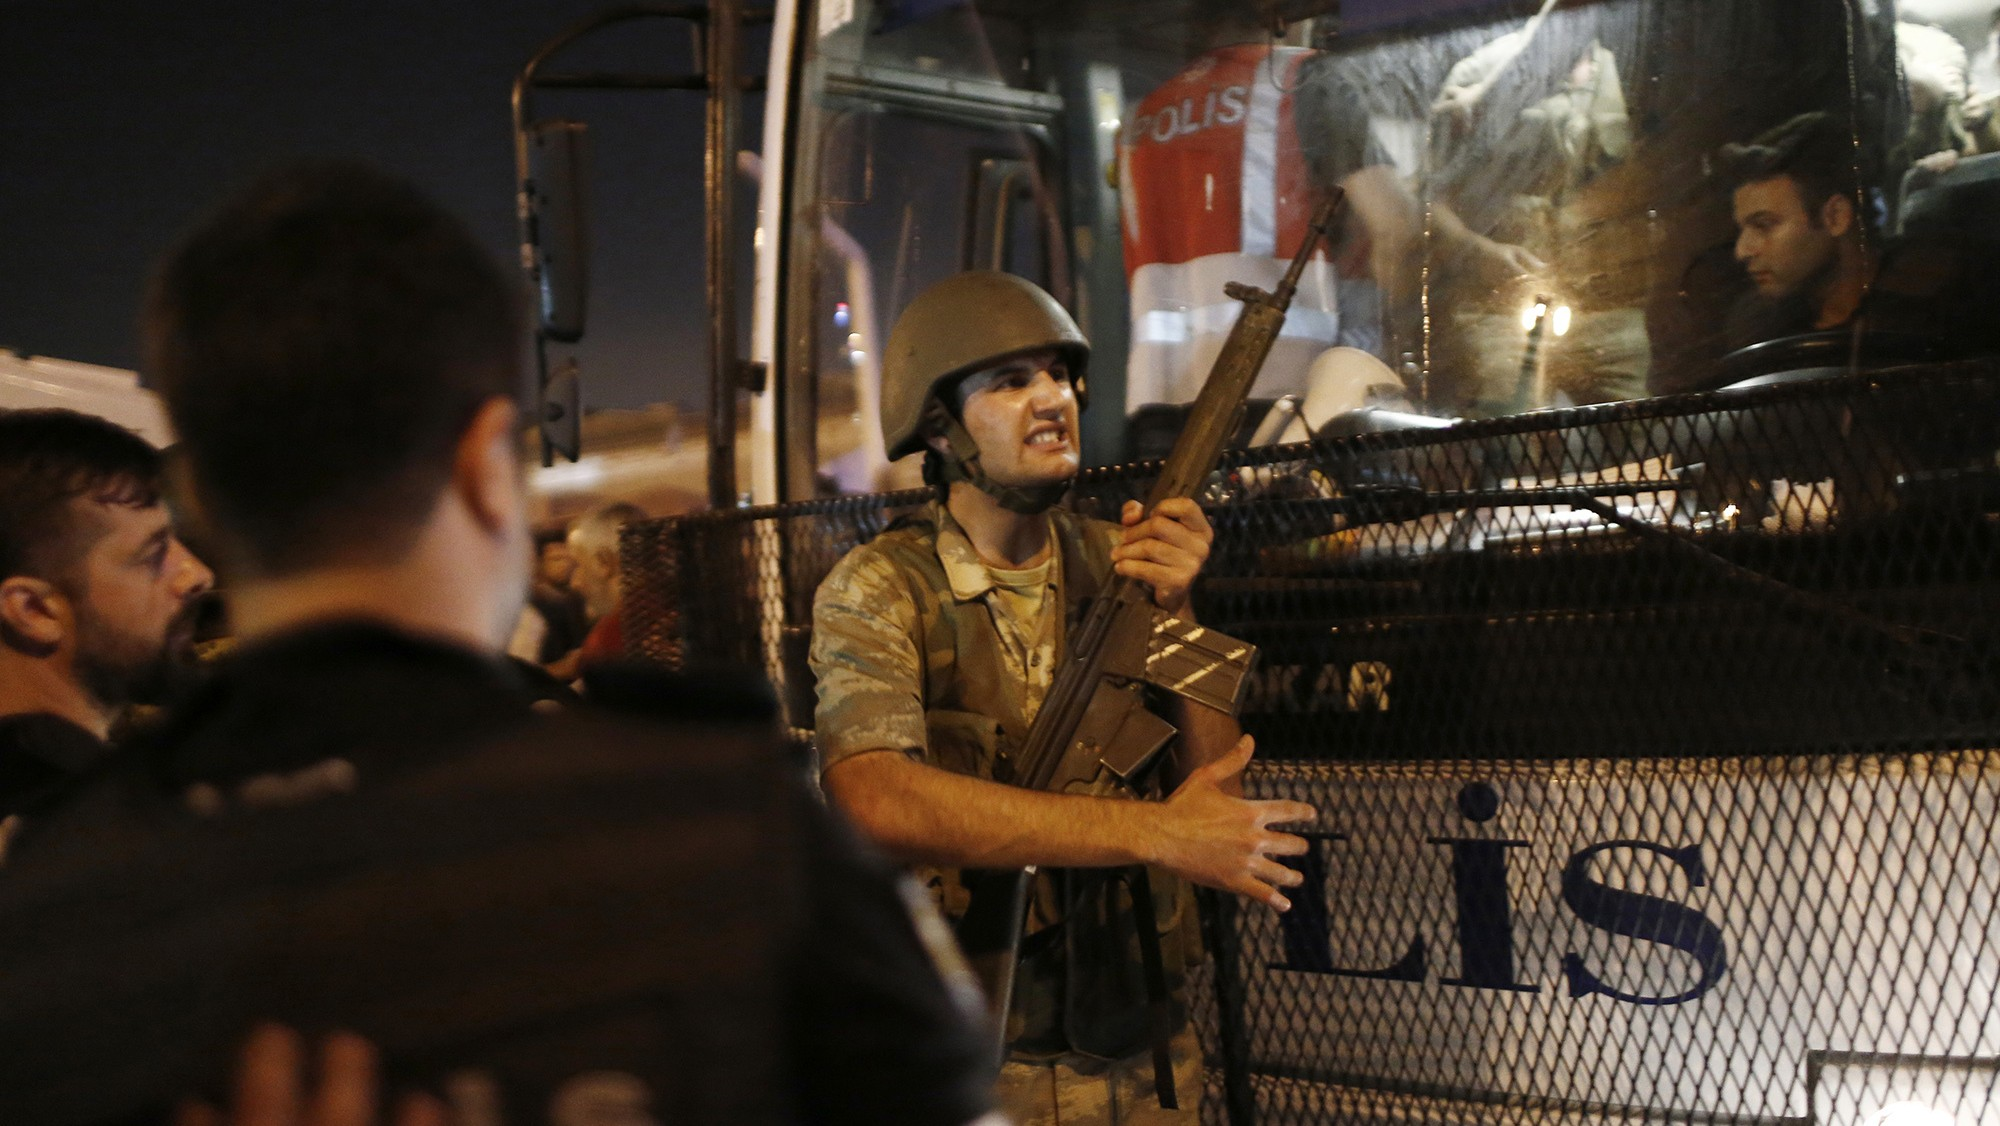 Turkey's government went on an arrest spree after the attempted coup